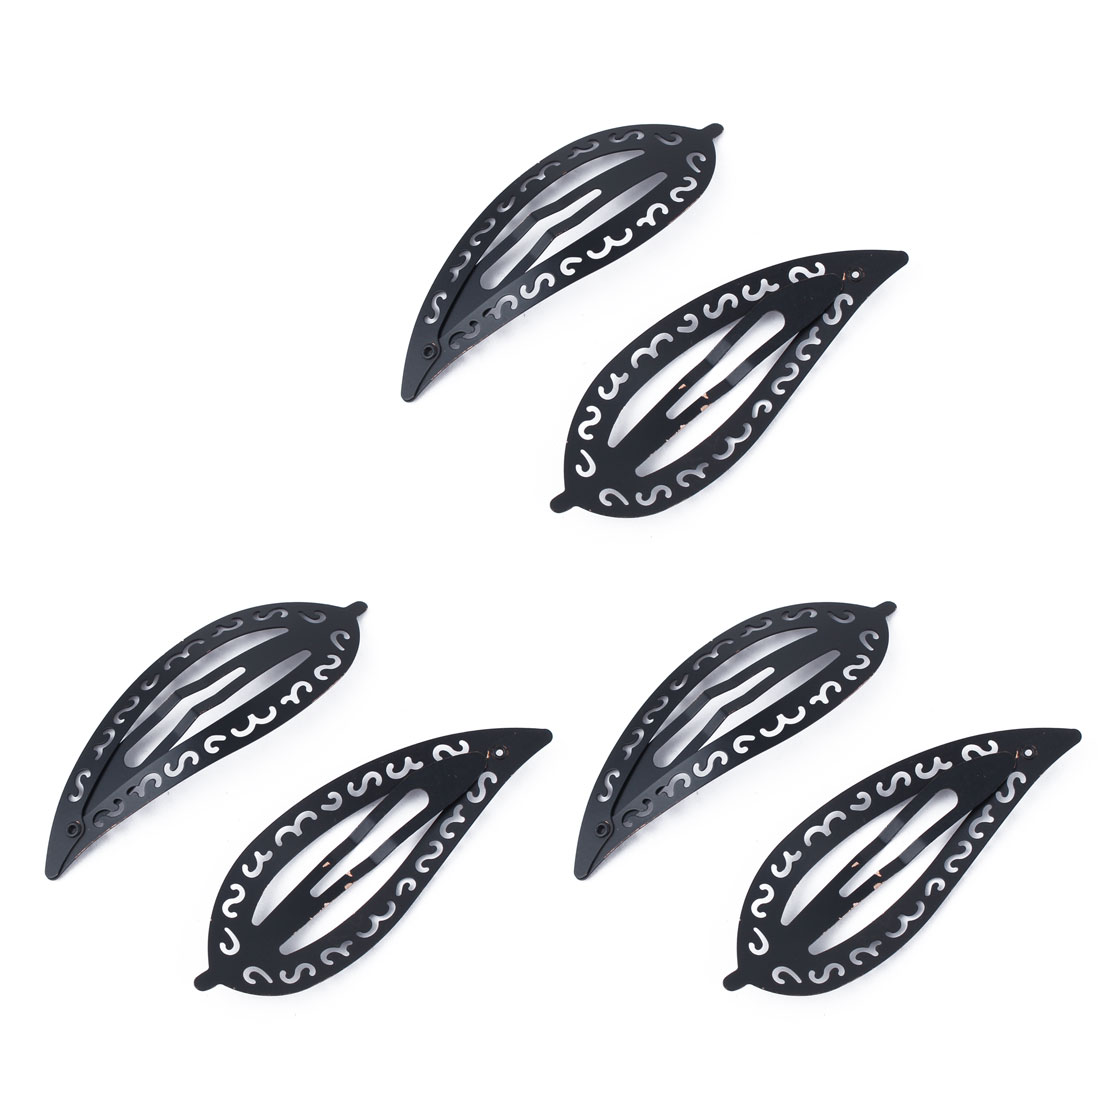 Ladies Metal Leaf Shaped Bobby Pin Snap Hair Styling Clip Hairpin Decor Black 6pcs